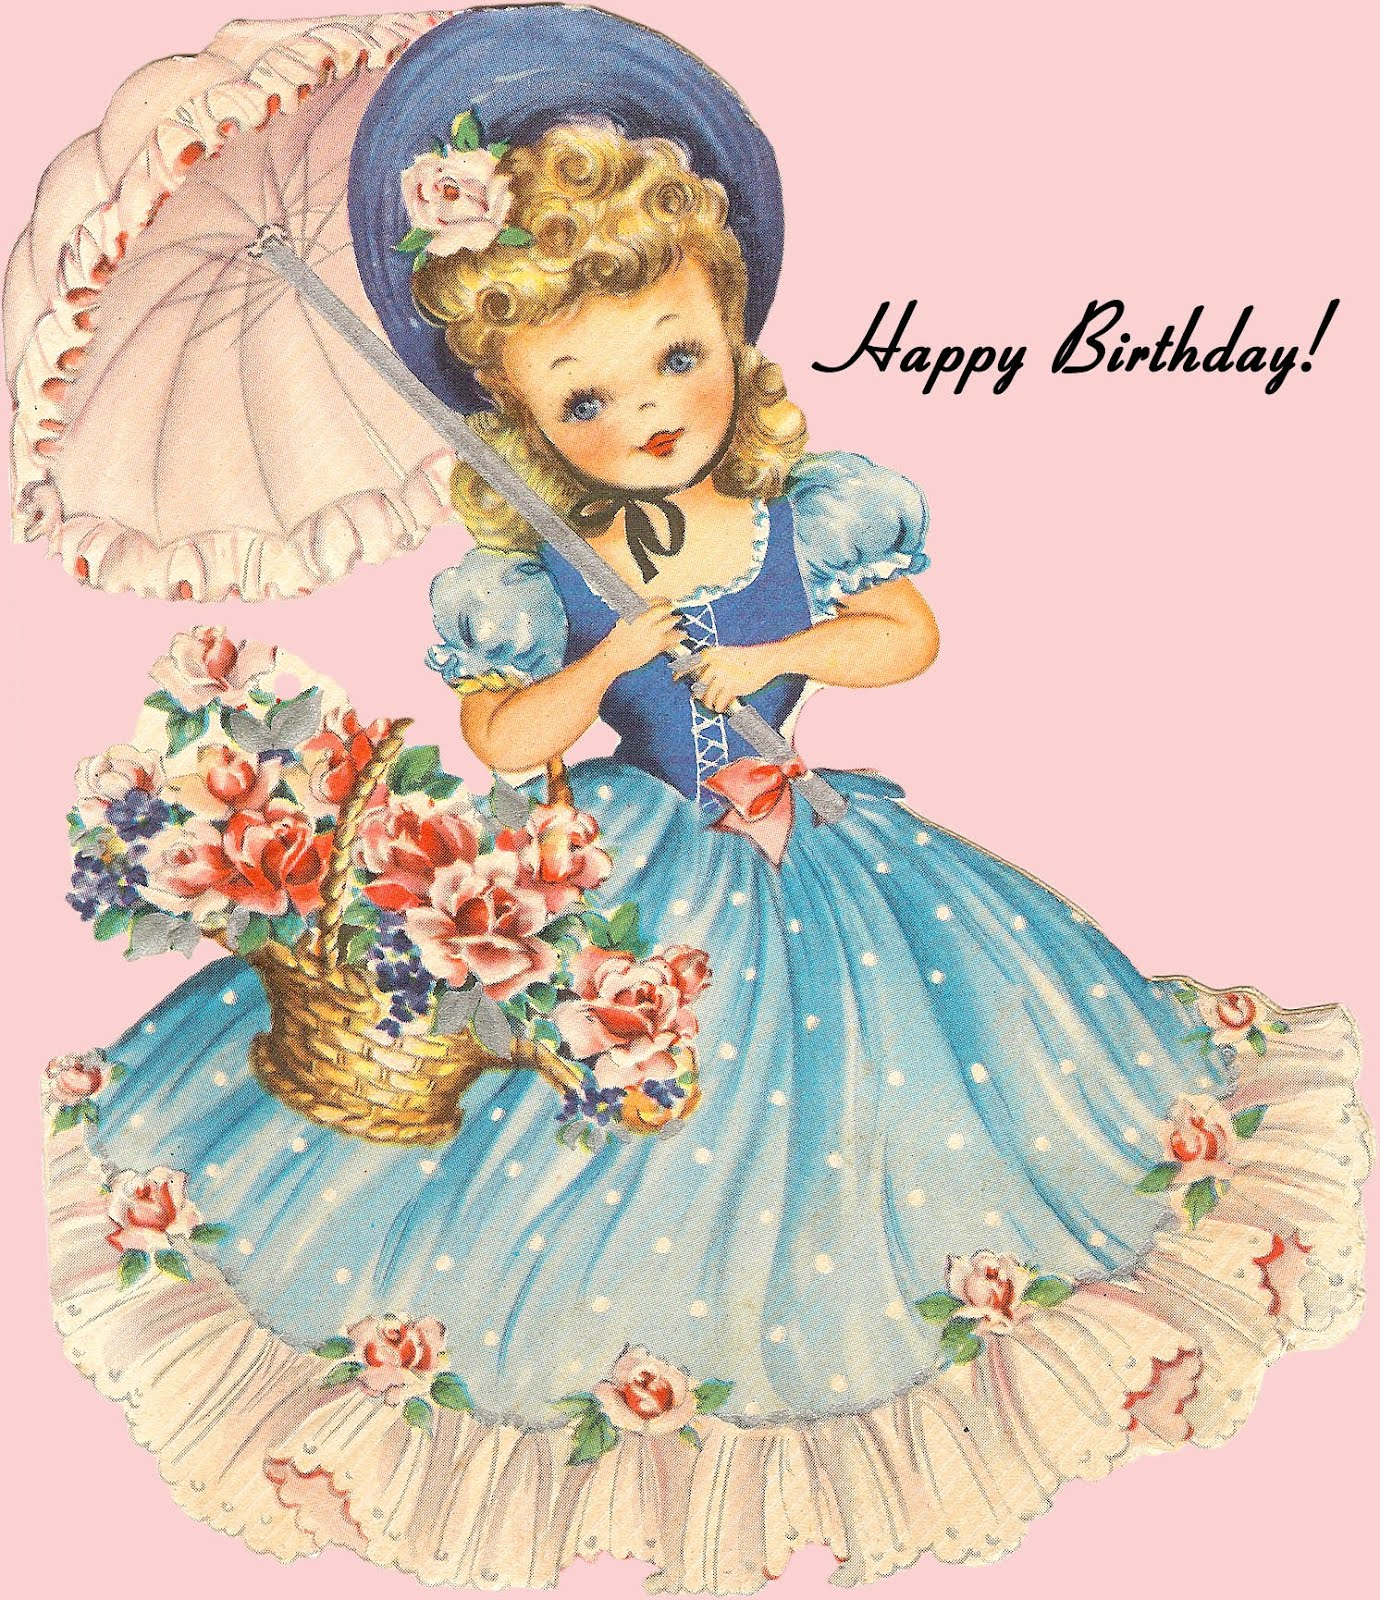 Images Of Vintage Girls First Birthday Card: **FREE ViNTaGE DiGiTaL STaMPS**: Free Retro Image